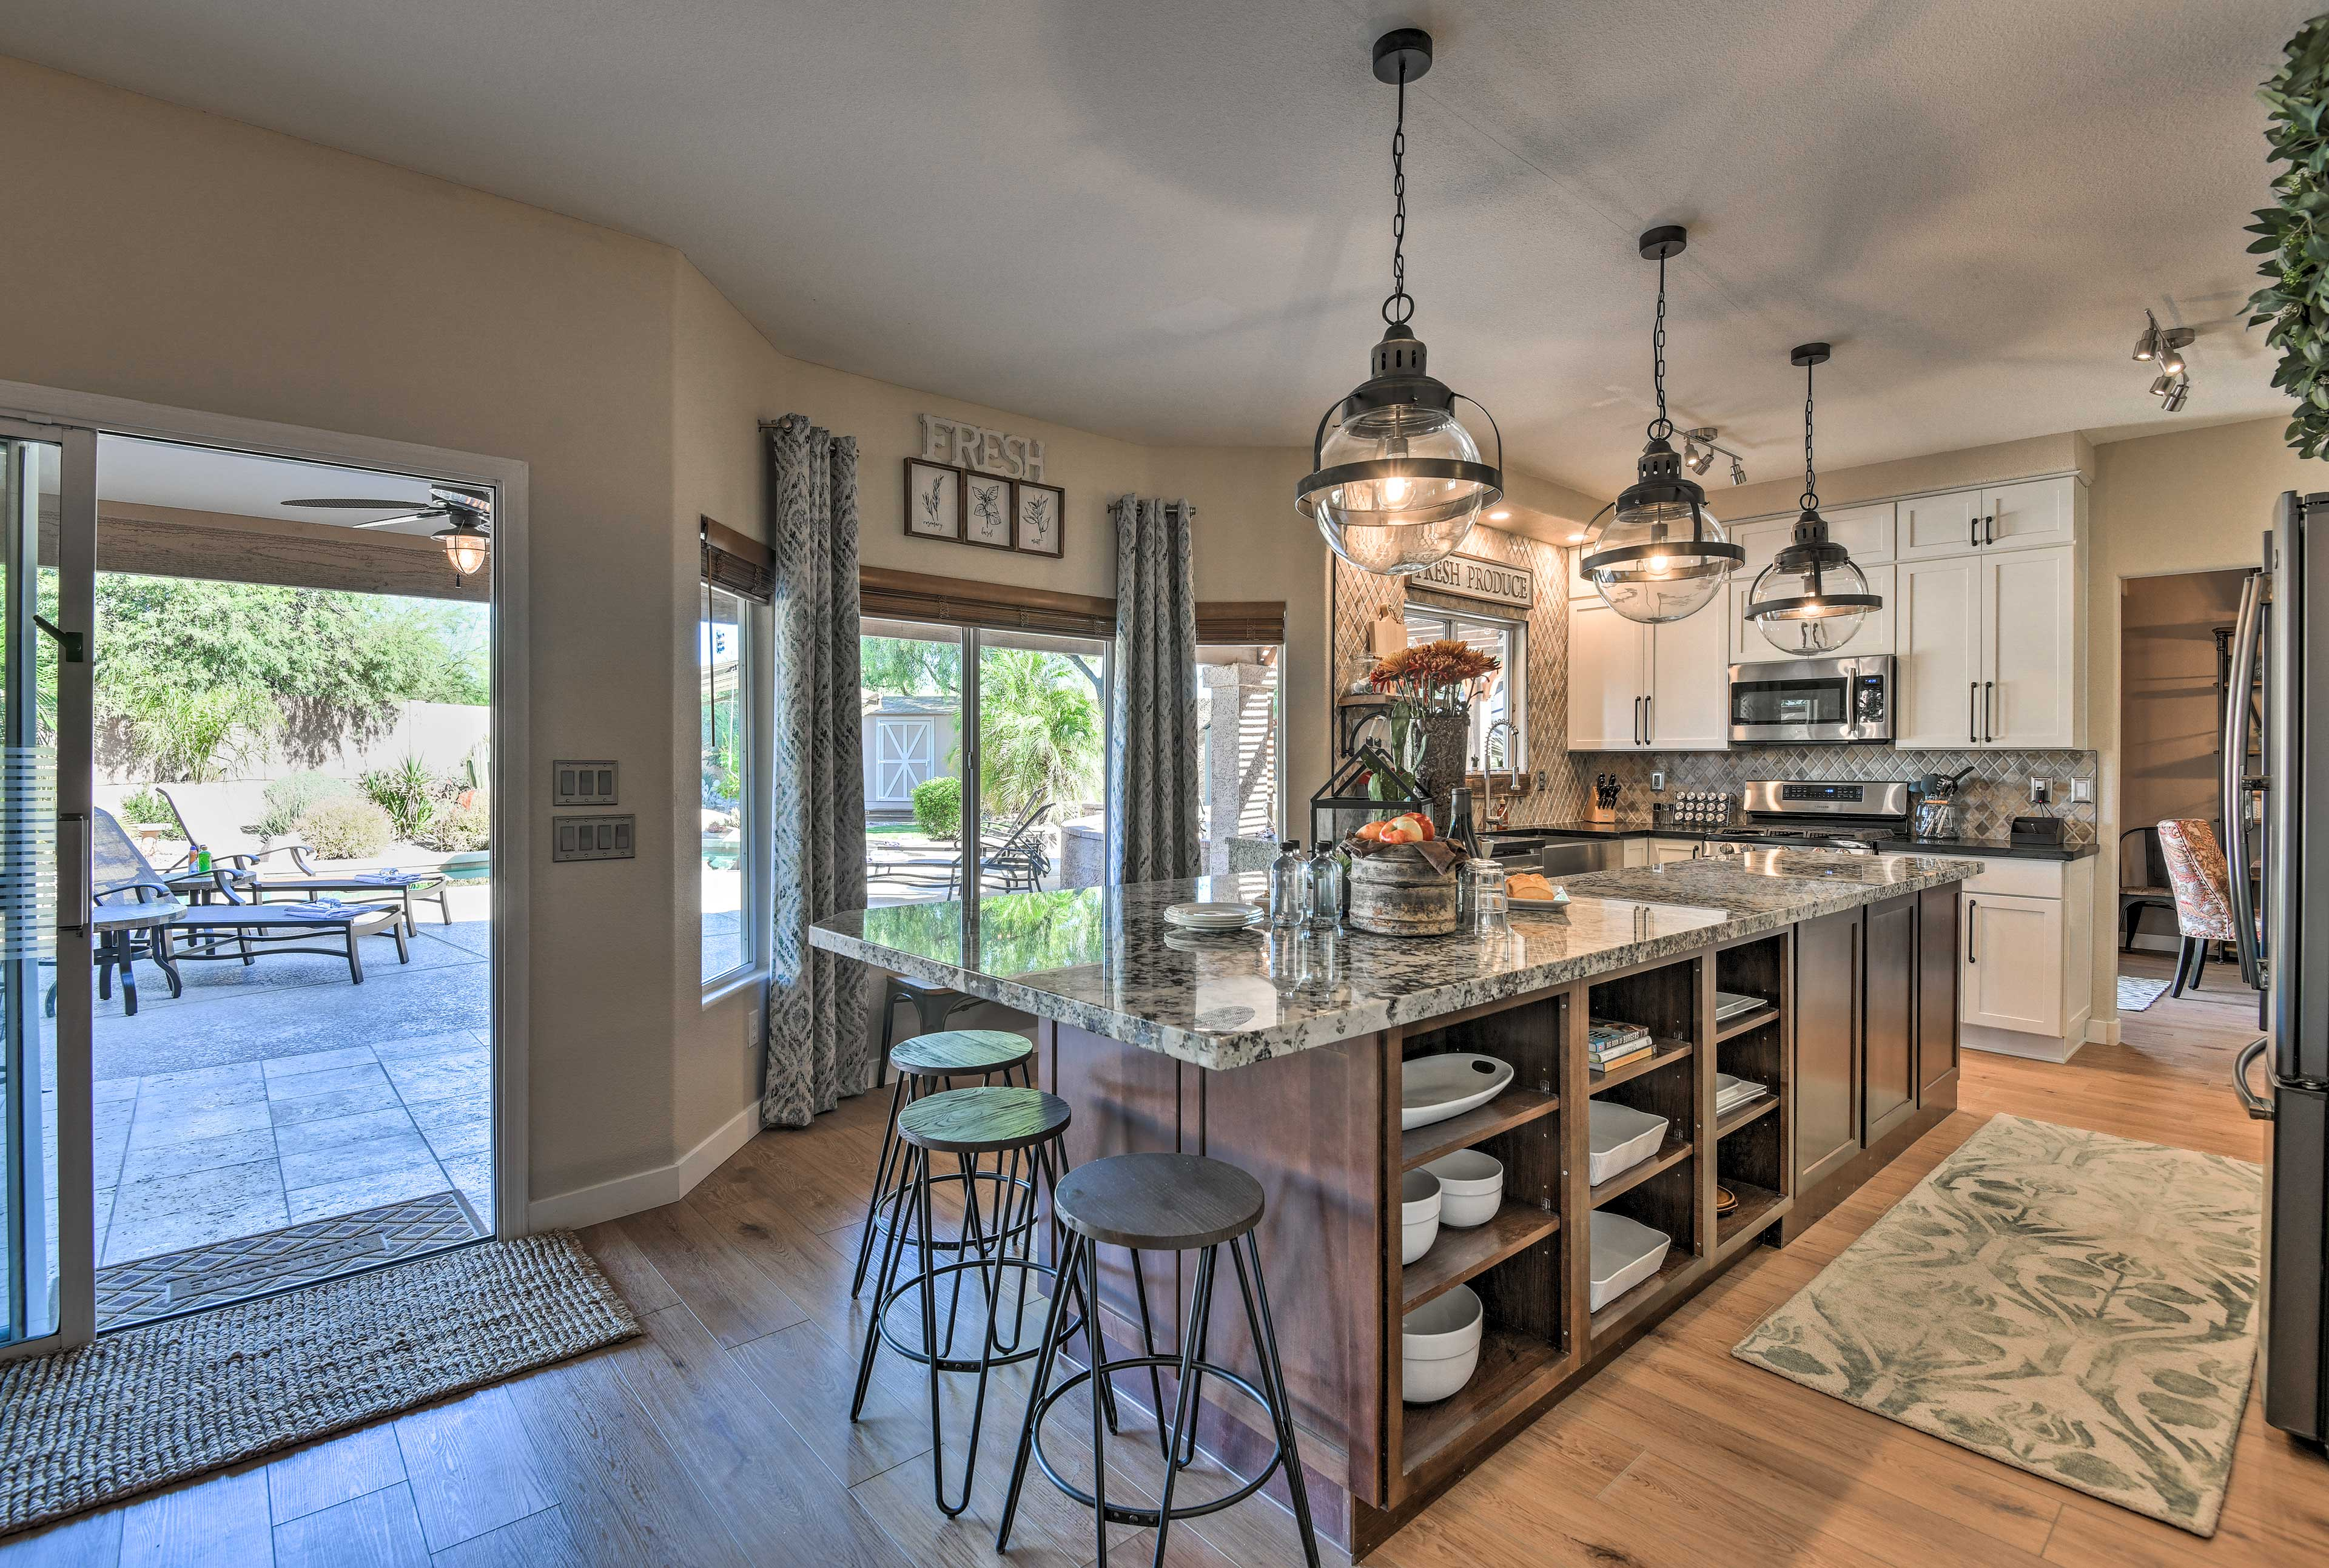 Take a few steps and find yourself in the fully equipped kitchen.